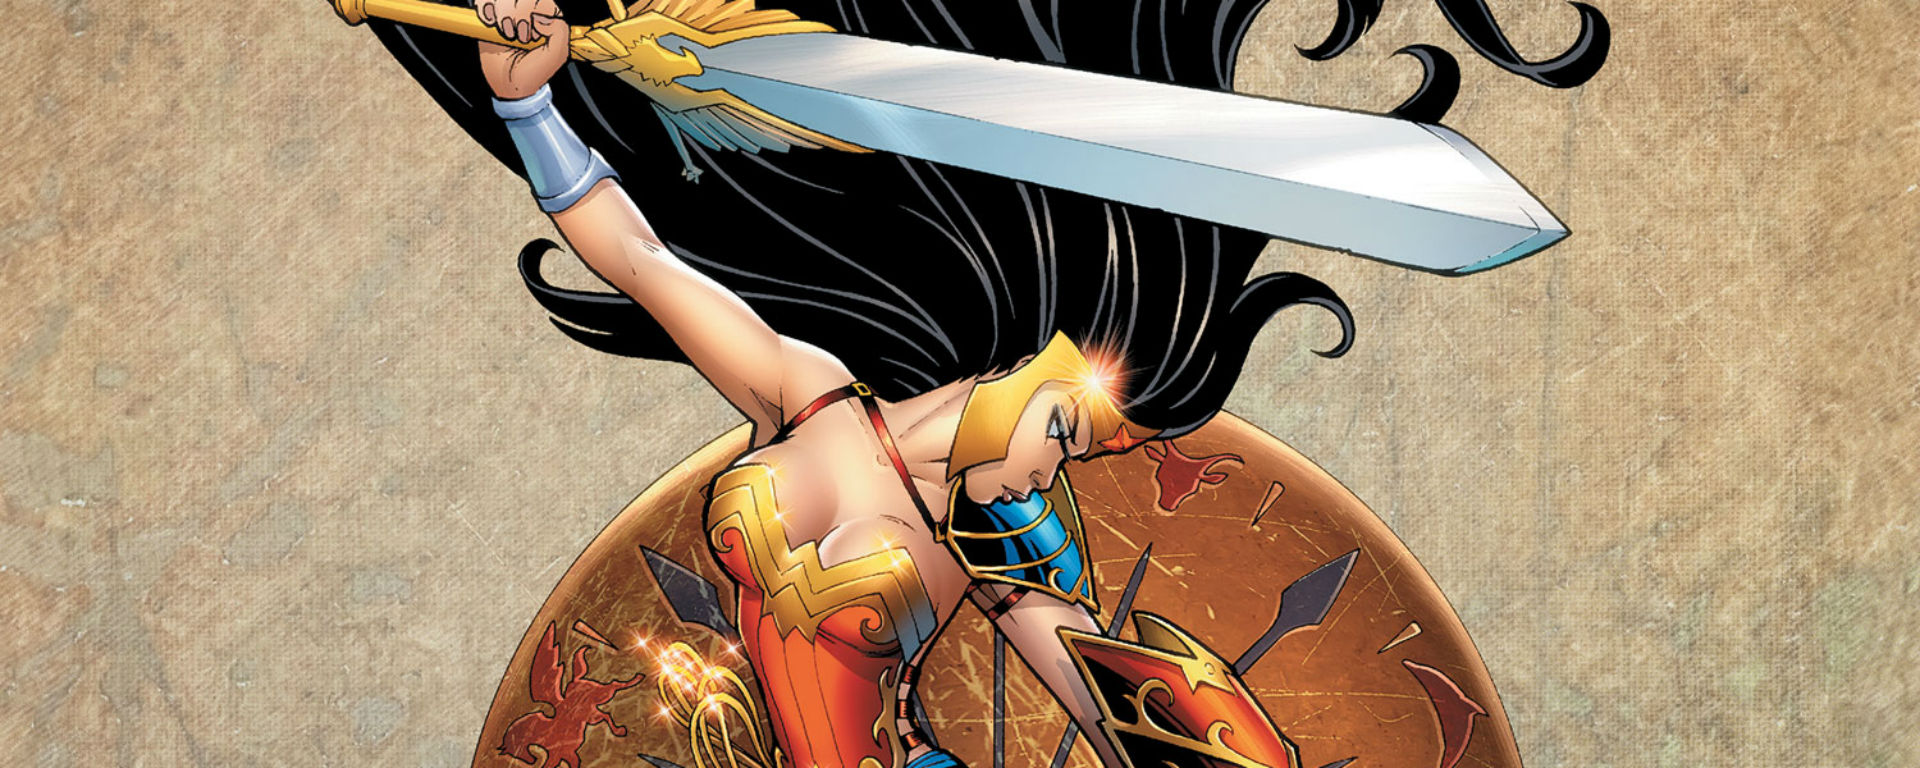 dc comics ame comi girls wonder woman 3 review feature image